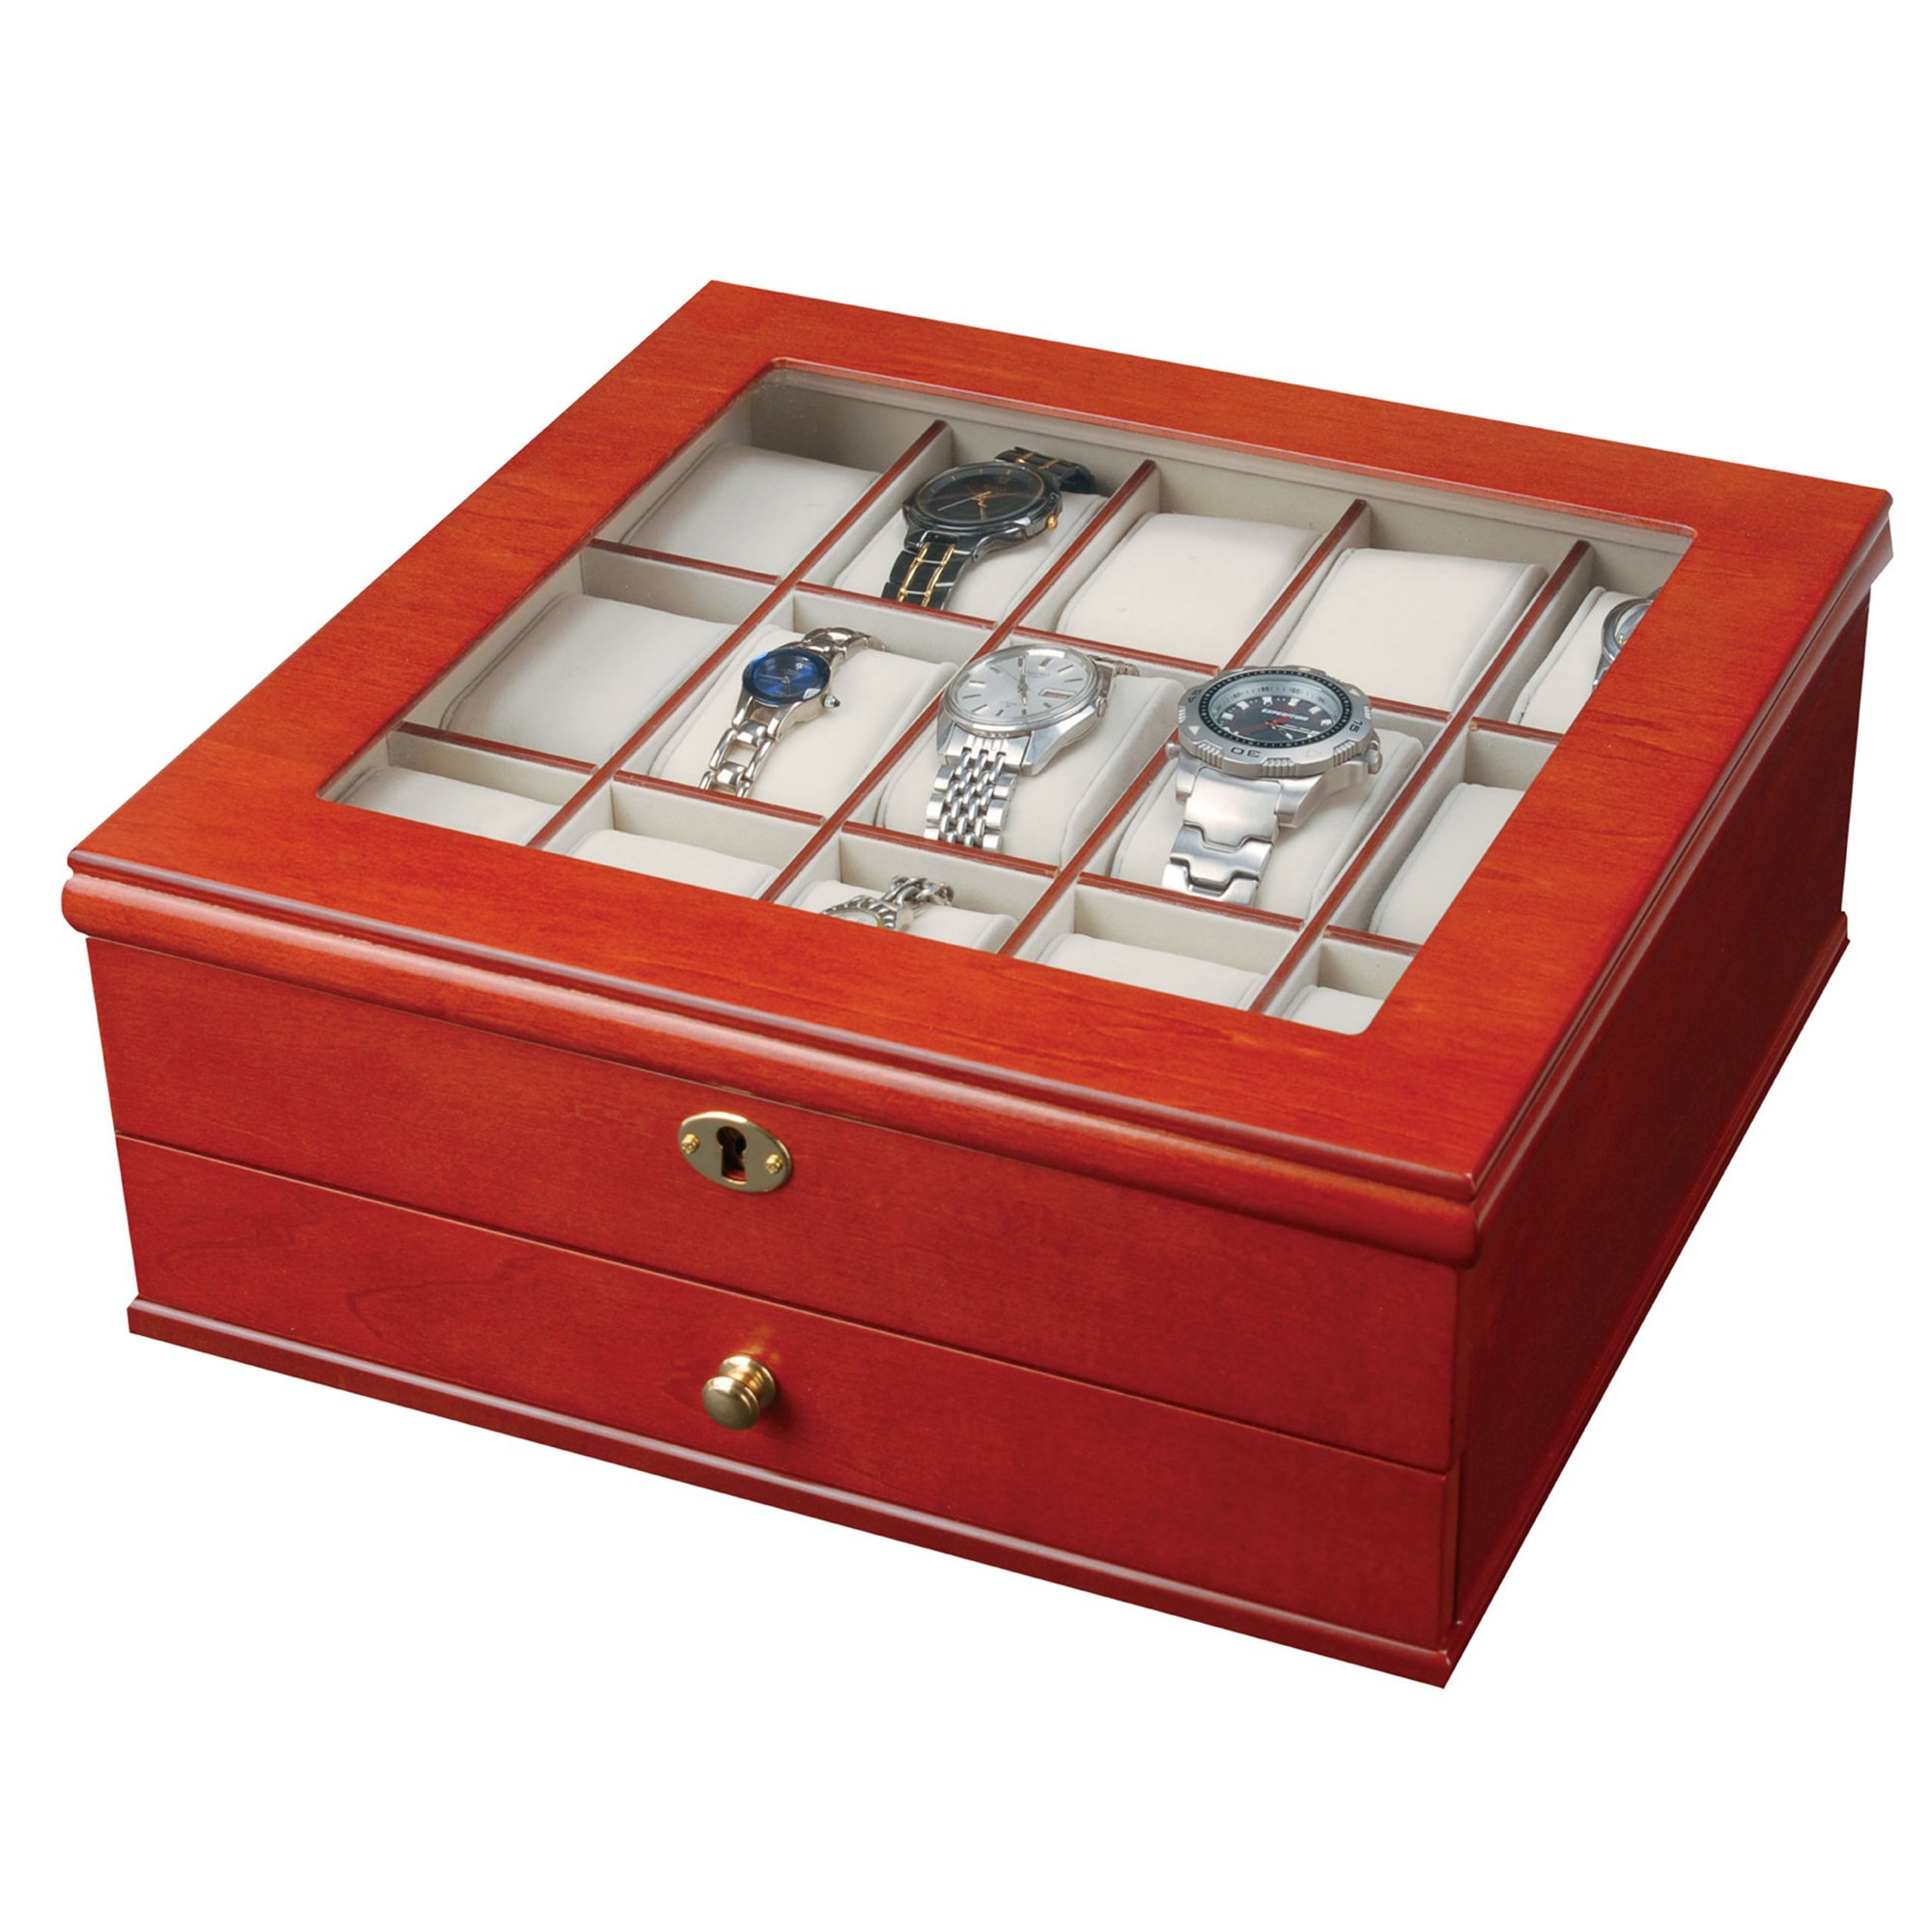 Mele & Co. 0067711 Chris Locking Wooden Watch Box by Mele & Co.